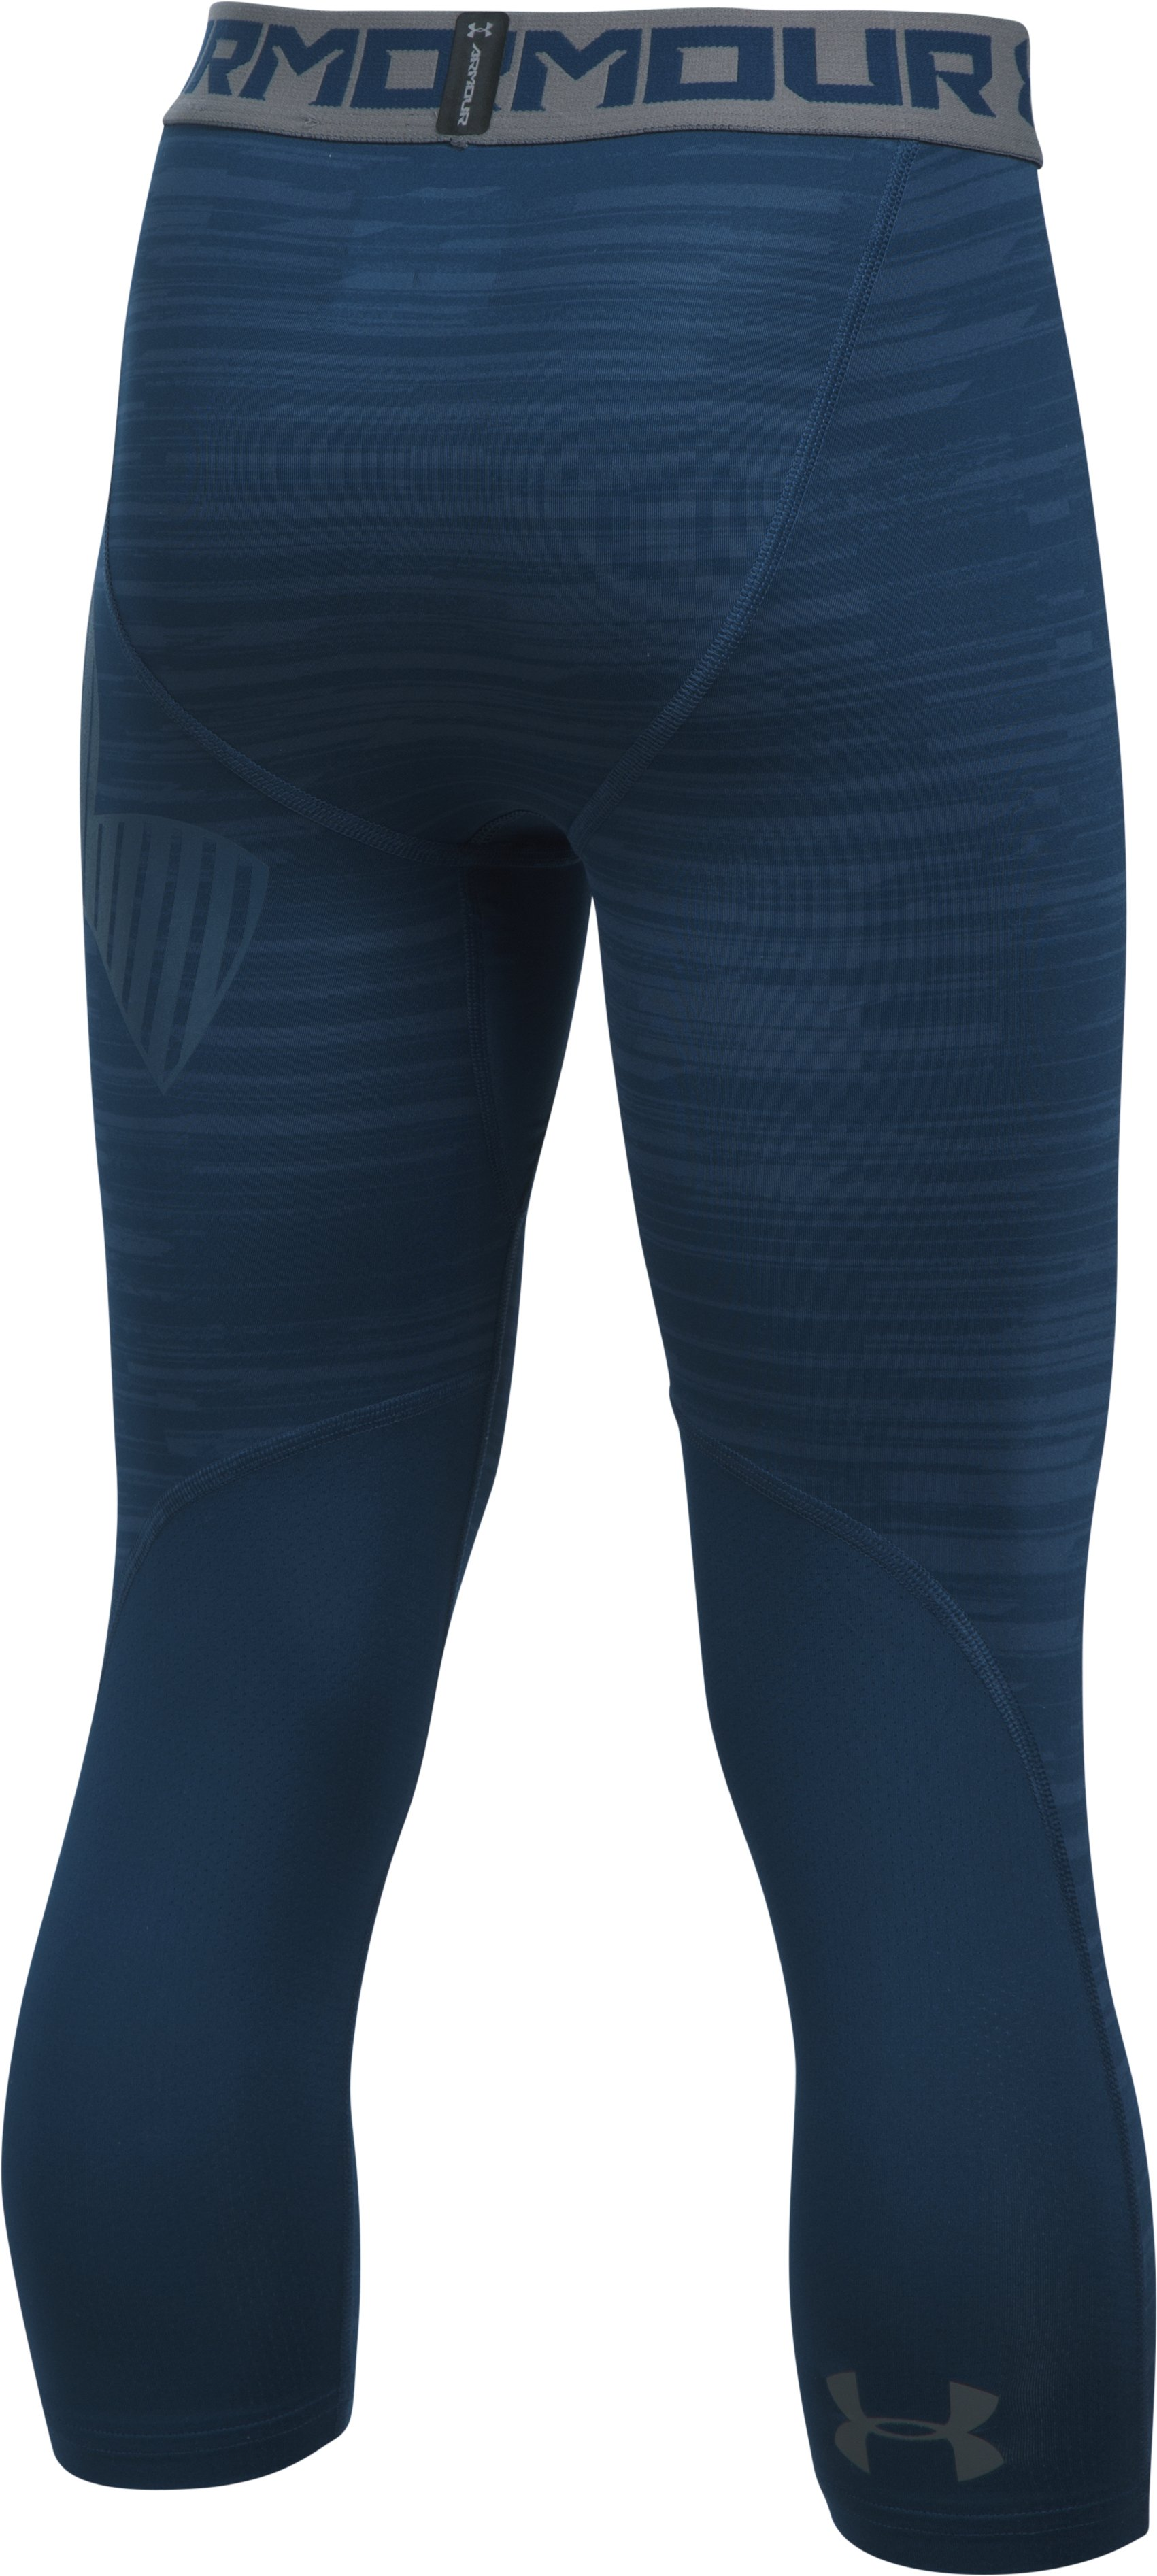 Boys' HeatGear® Armour HeatGear® Printed ¾ Leggings, BLACKOUT NAVY,